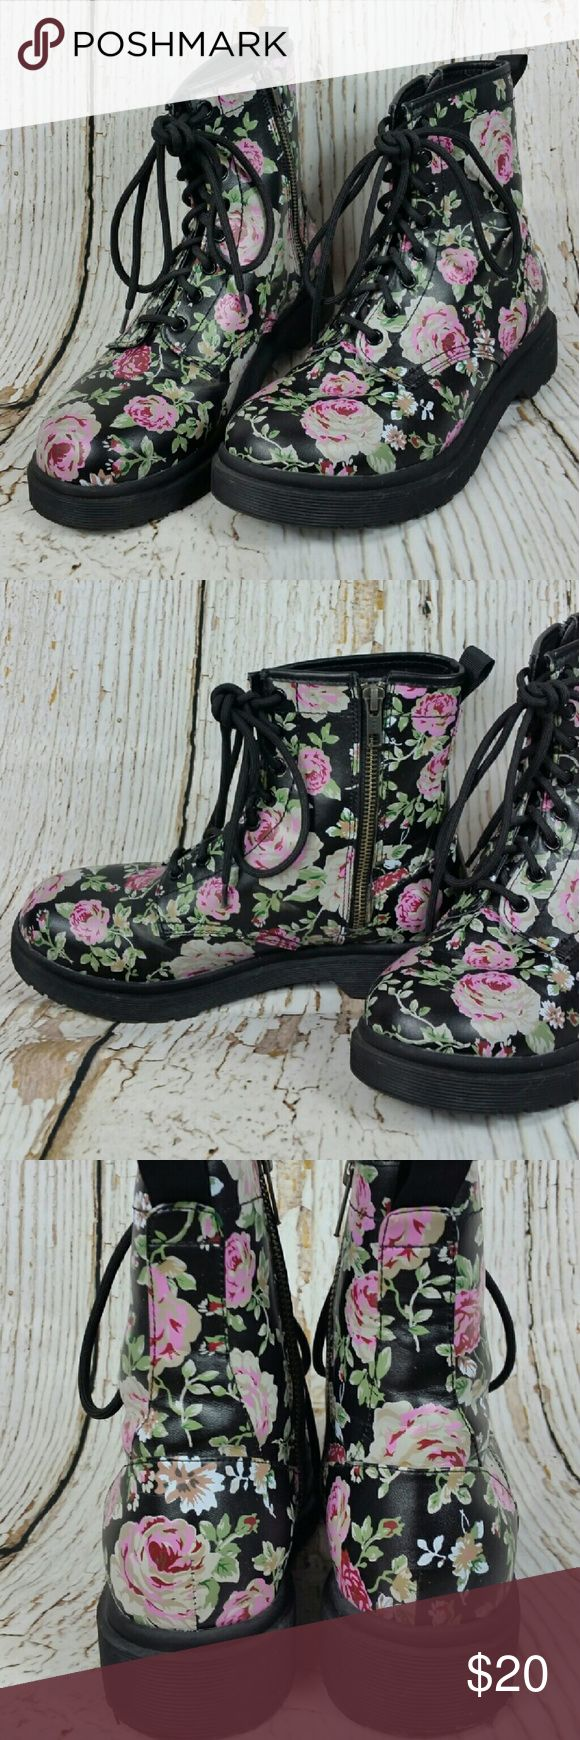 Floral Combat Boots ~Only worn a couple of times ~EUC ~NO TRADES  ~REASONABLE OFFERS ACCEPTED  ~PLEASE ASK ALL QUESTIONS BEFORE PURCHASING Mossimo Supply Co Shoes Combat & Moto Boots